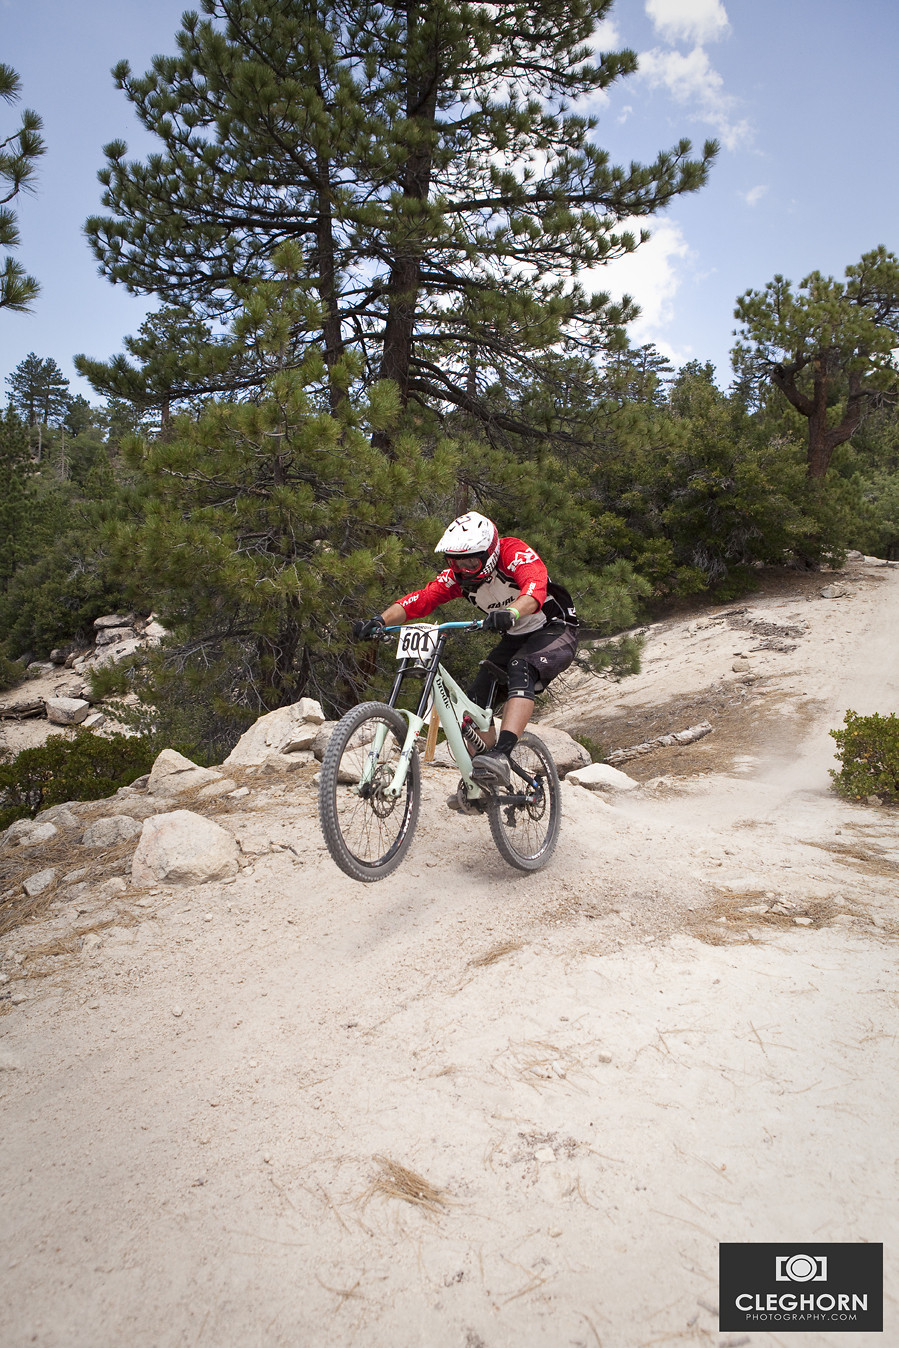 MG 0464 - Cleghorn Photography - Mountain Biking Pictures - Vital MTB